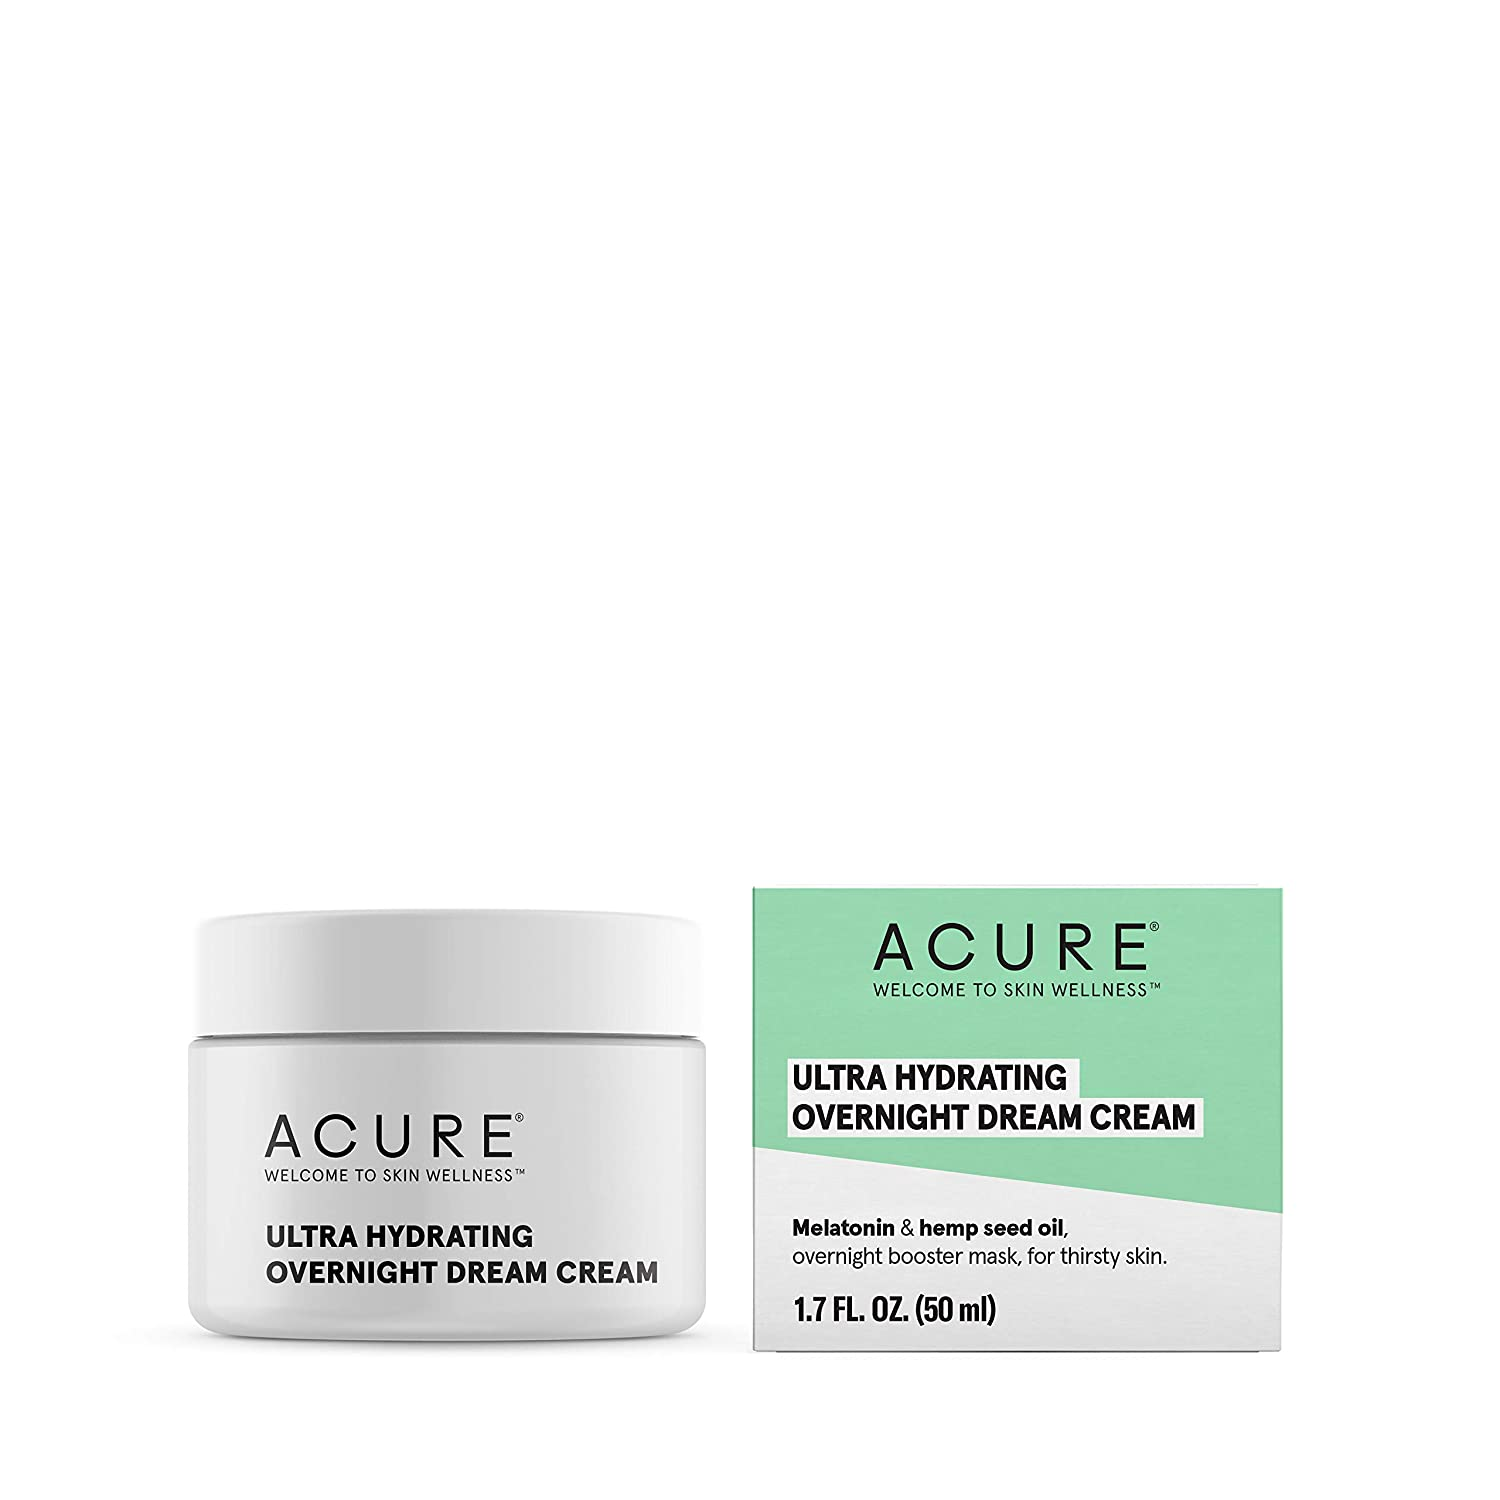 Acure Ultra Hydrating Overnight Dream Cream, 100% Vegan, Intense Moisture For Super Thirsty Skin, 1.7 Fl Oz : Beauty & Personal Care